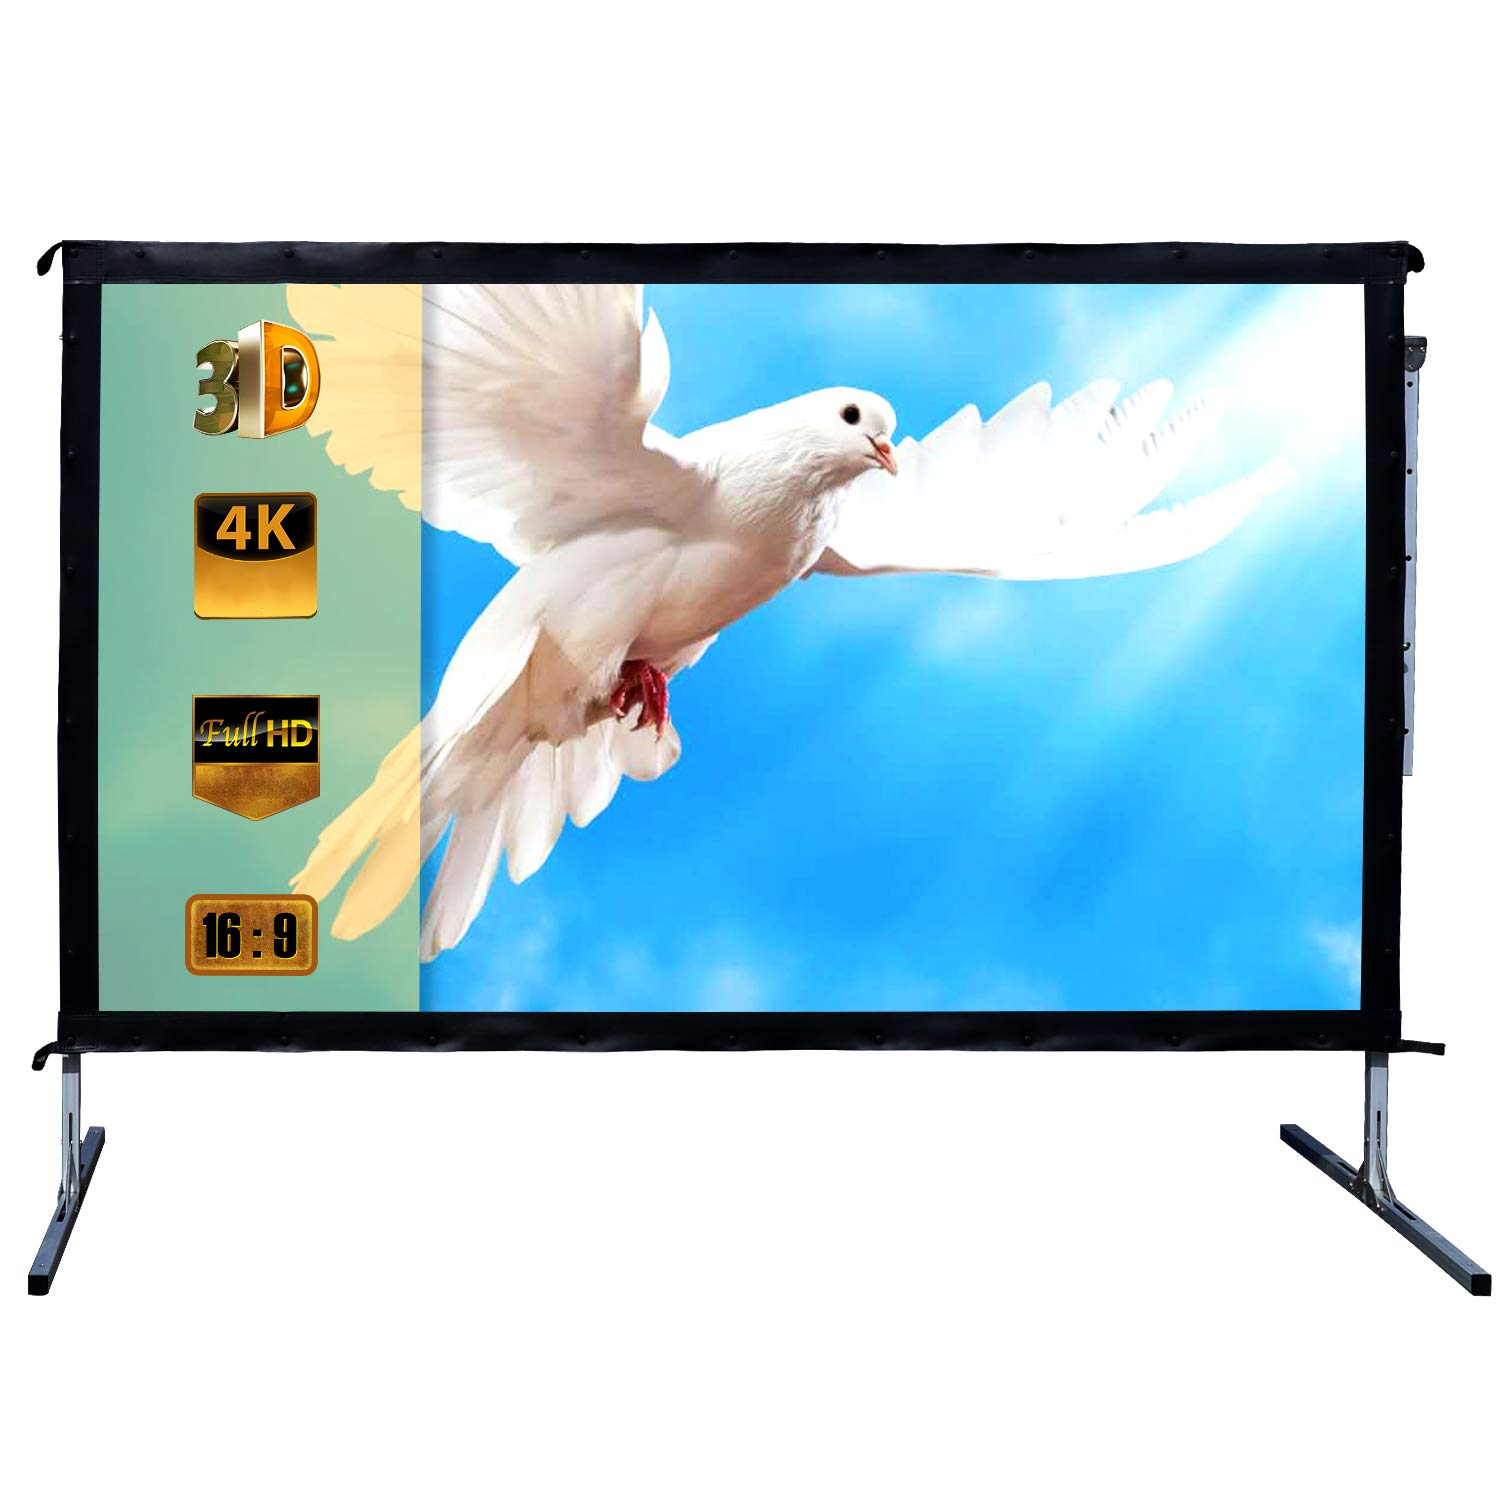 Outdoor Indoor Projector Screen with Stand, 144 inch HD Foldable Portable Projector Screen, 8K 4K 3D 16:9 Projection Movie Screen for Home Theater Camping Recreational Events, Waterproof, Anti-Crease